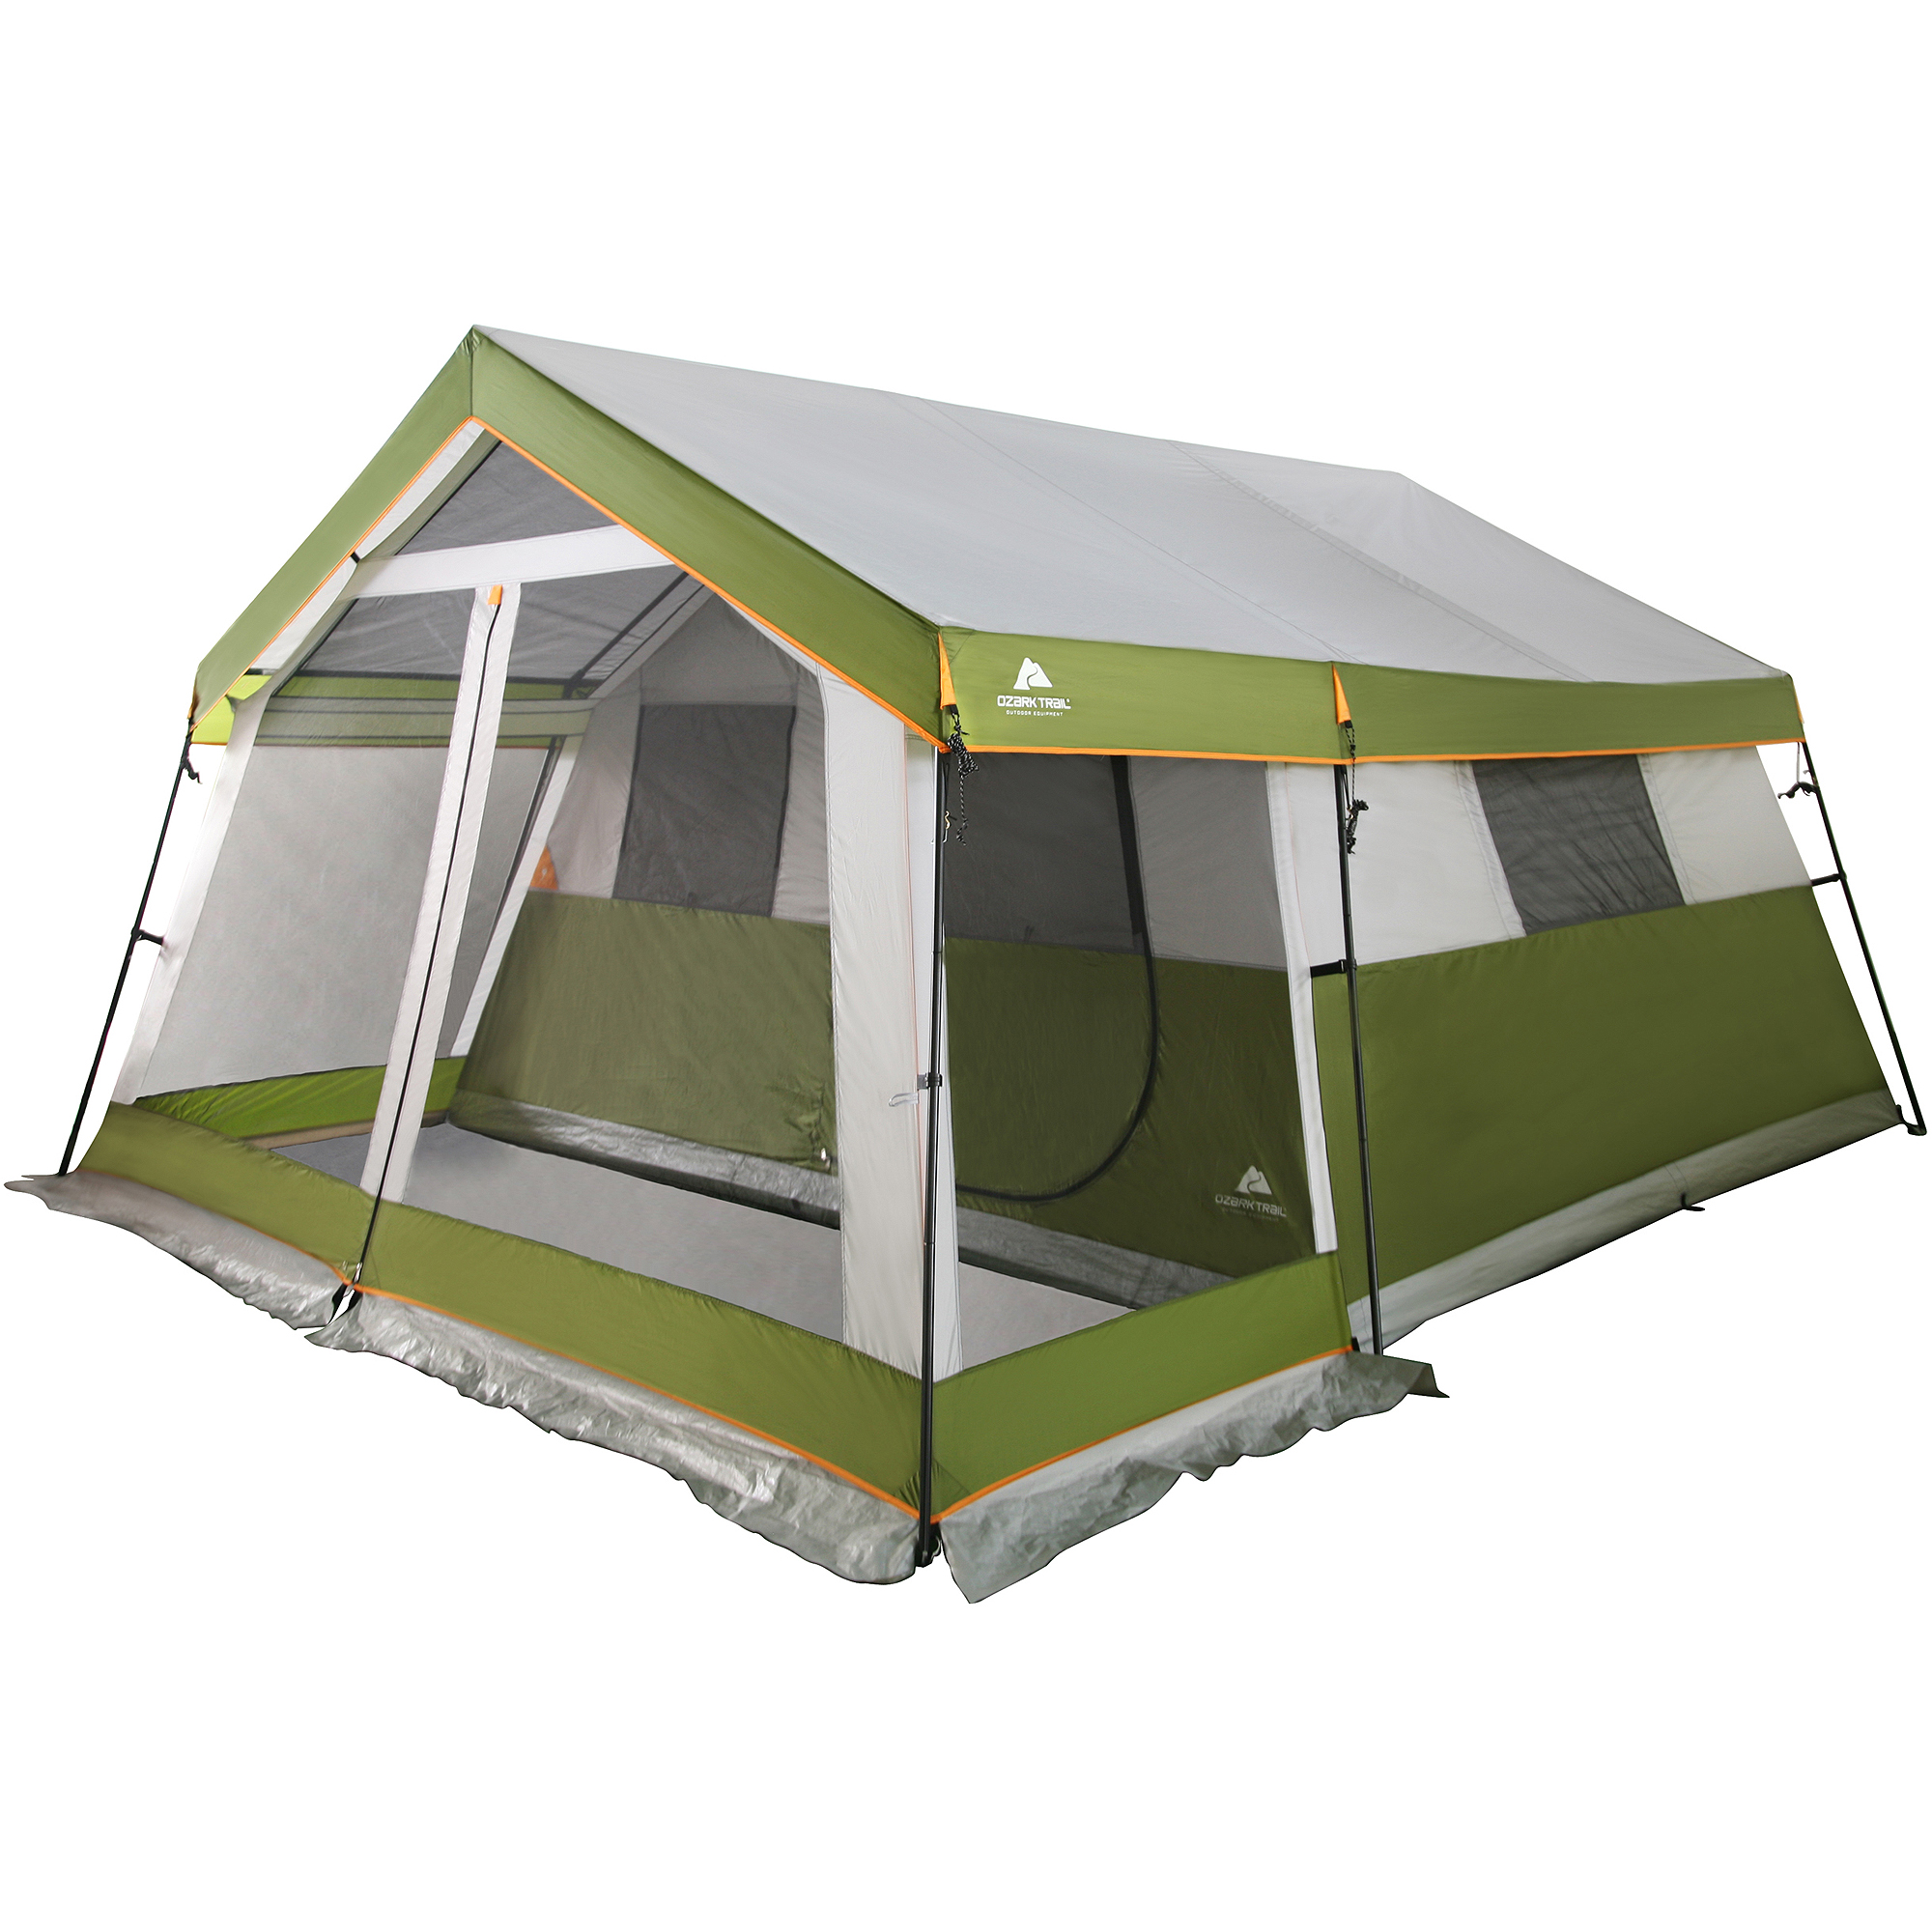 Ozark Trail 10 Person Family Cabin Tent With Screen Porch